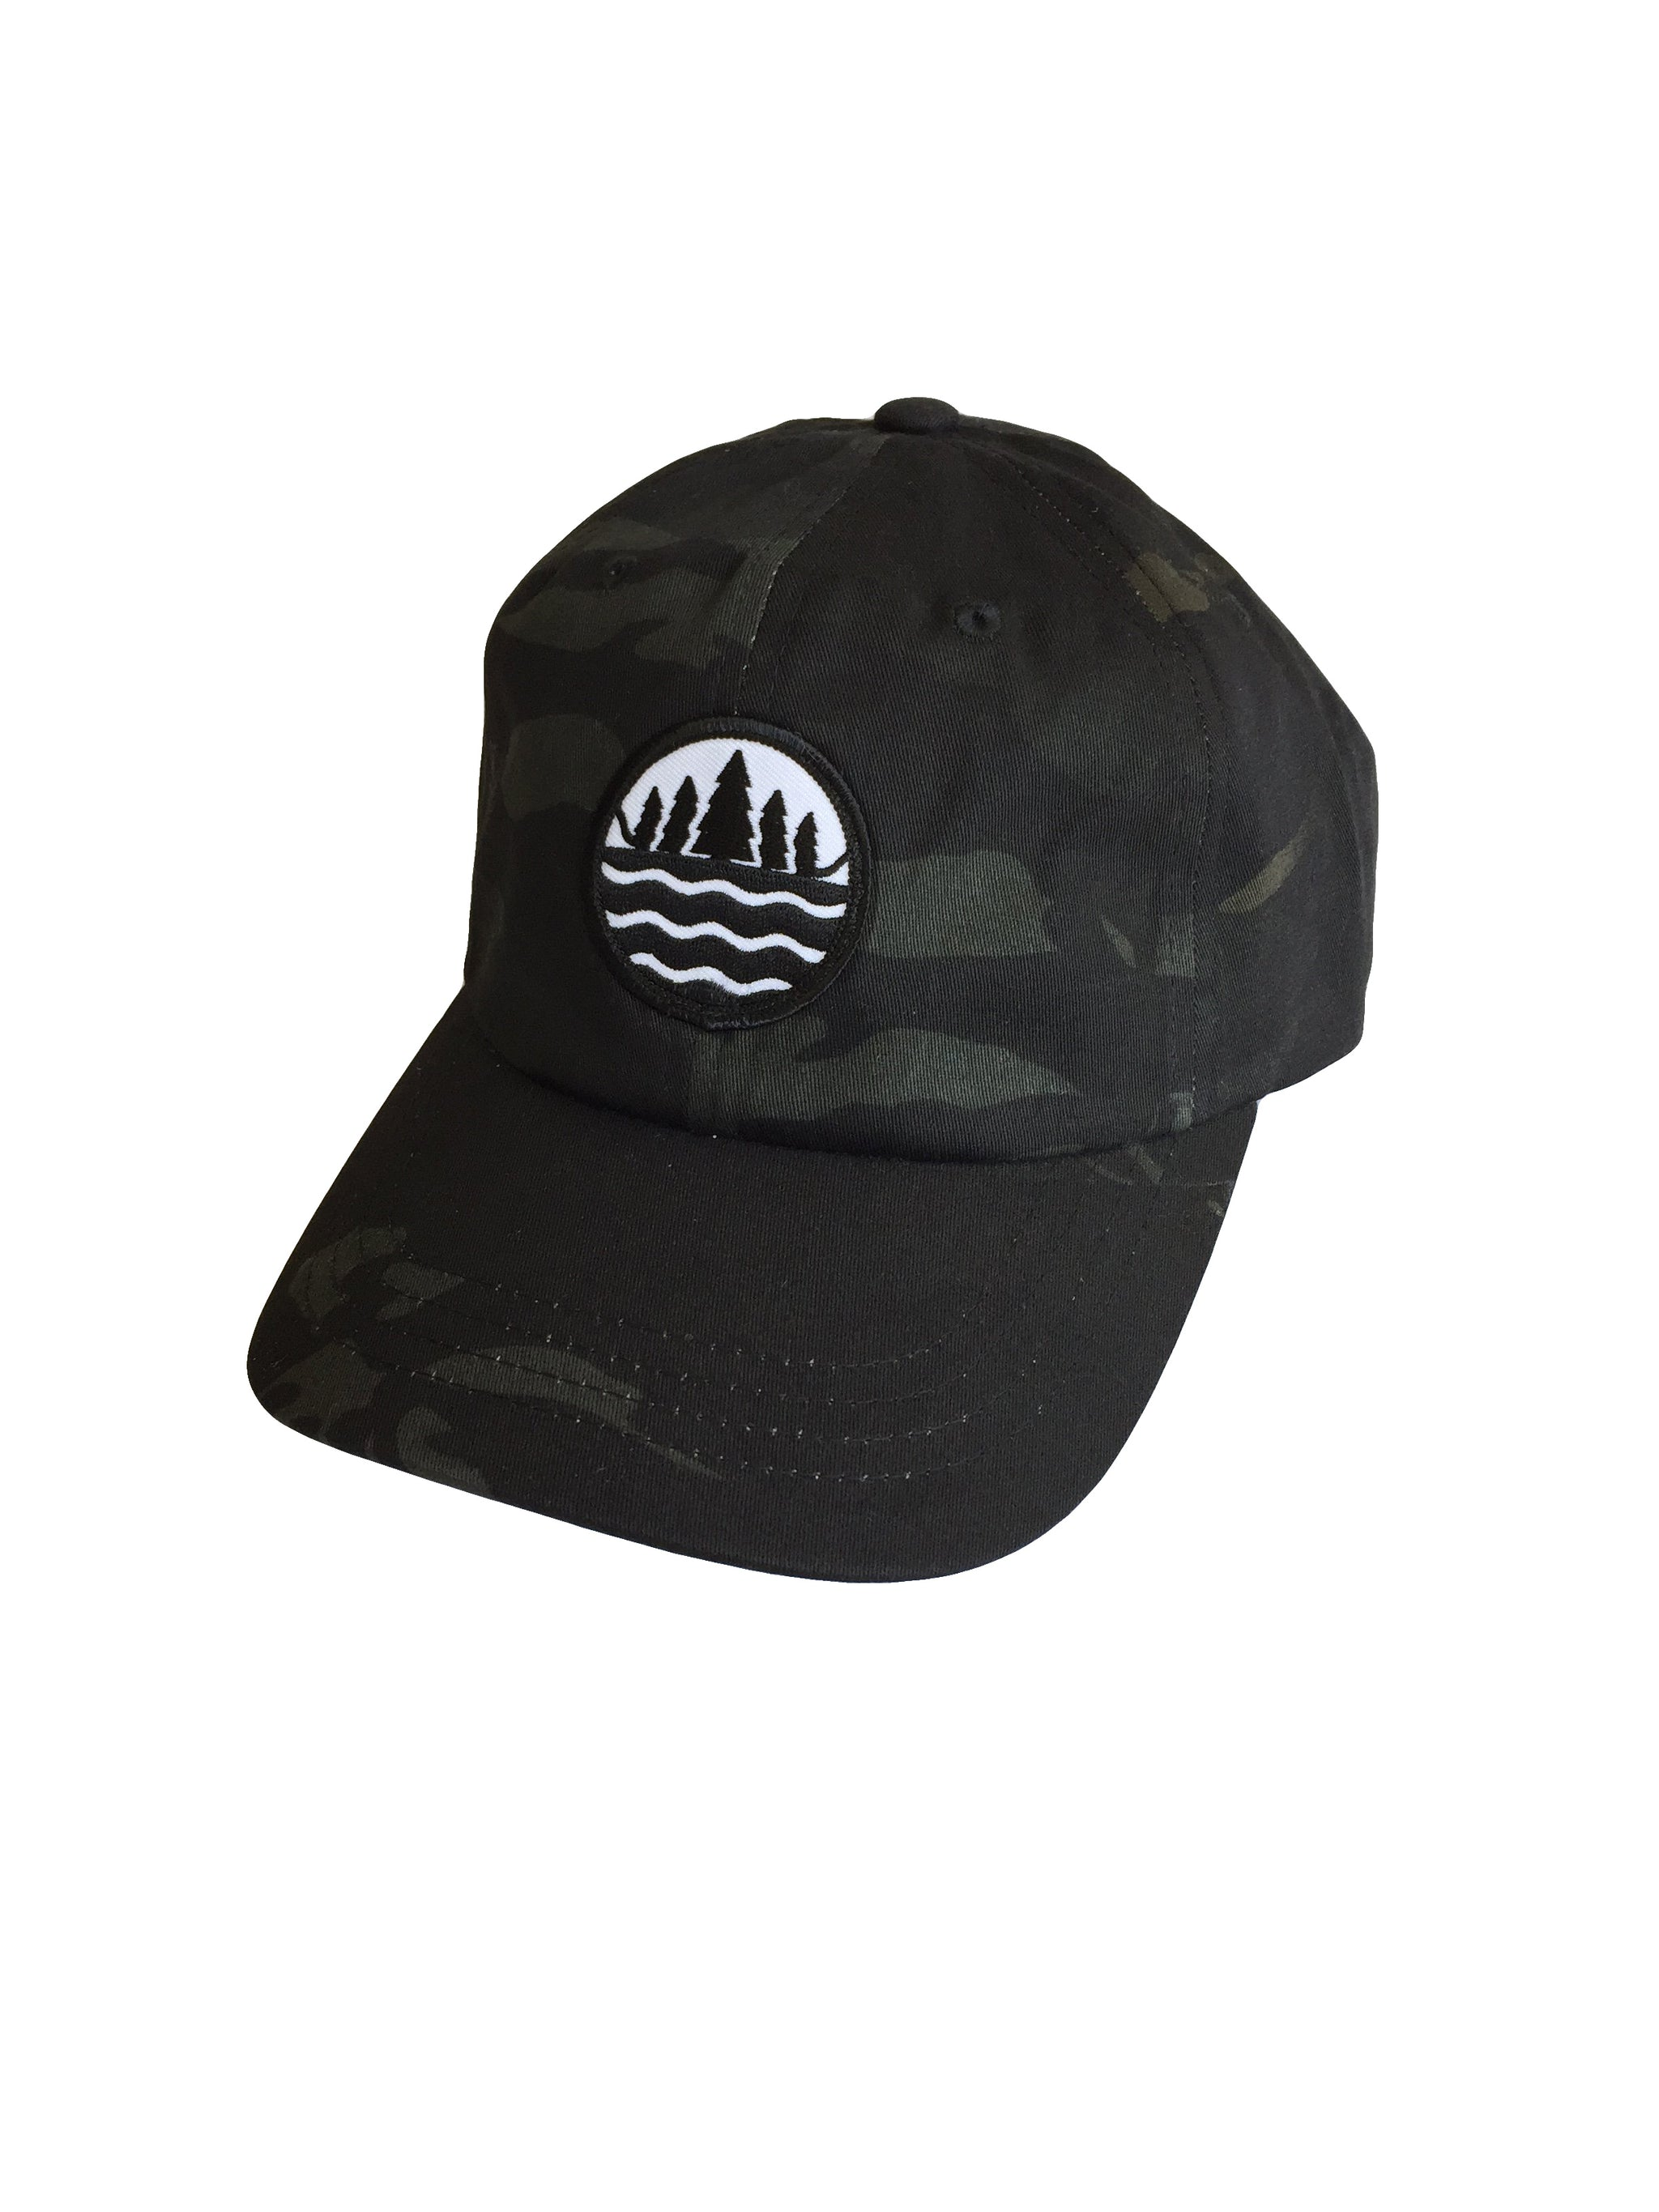 TGLS black low profile Multicam camo cap - The Great Lakes State be3aeffe2c45